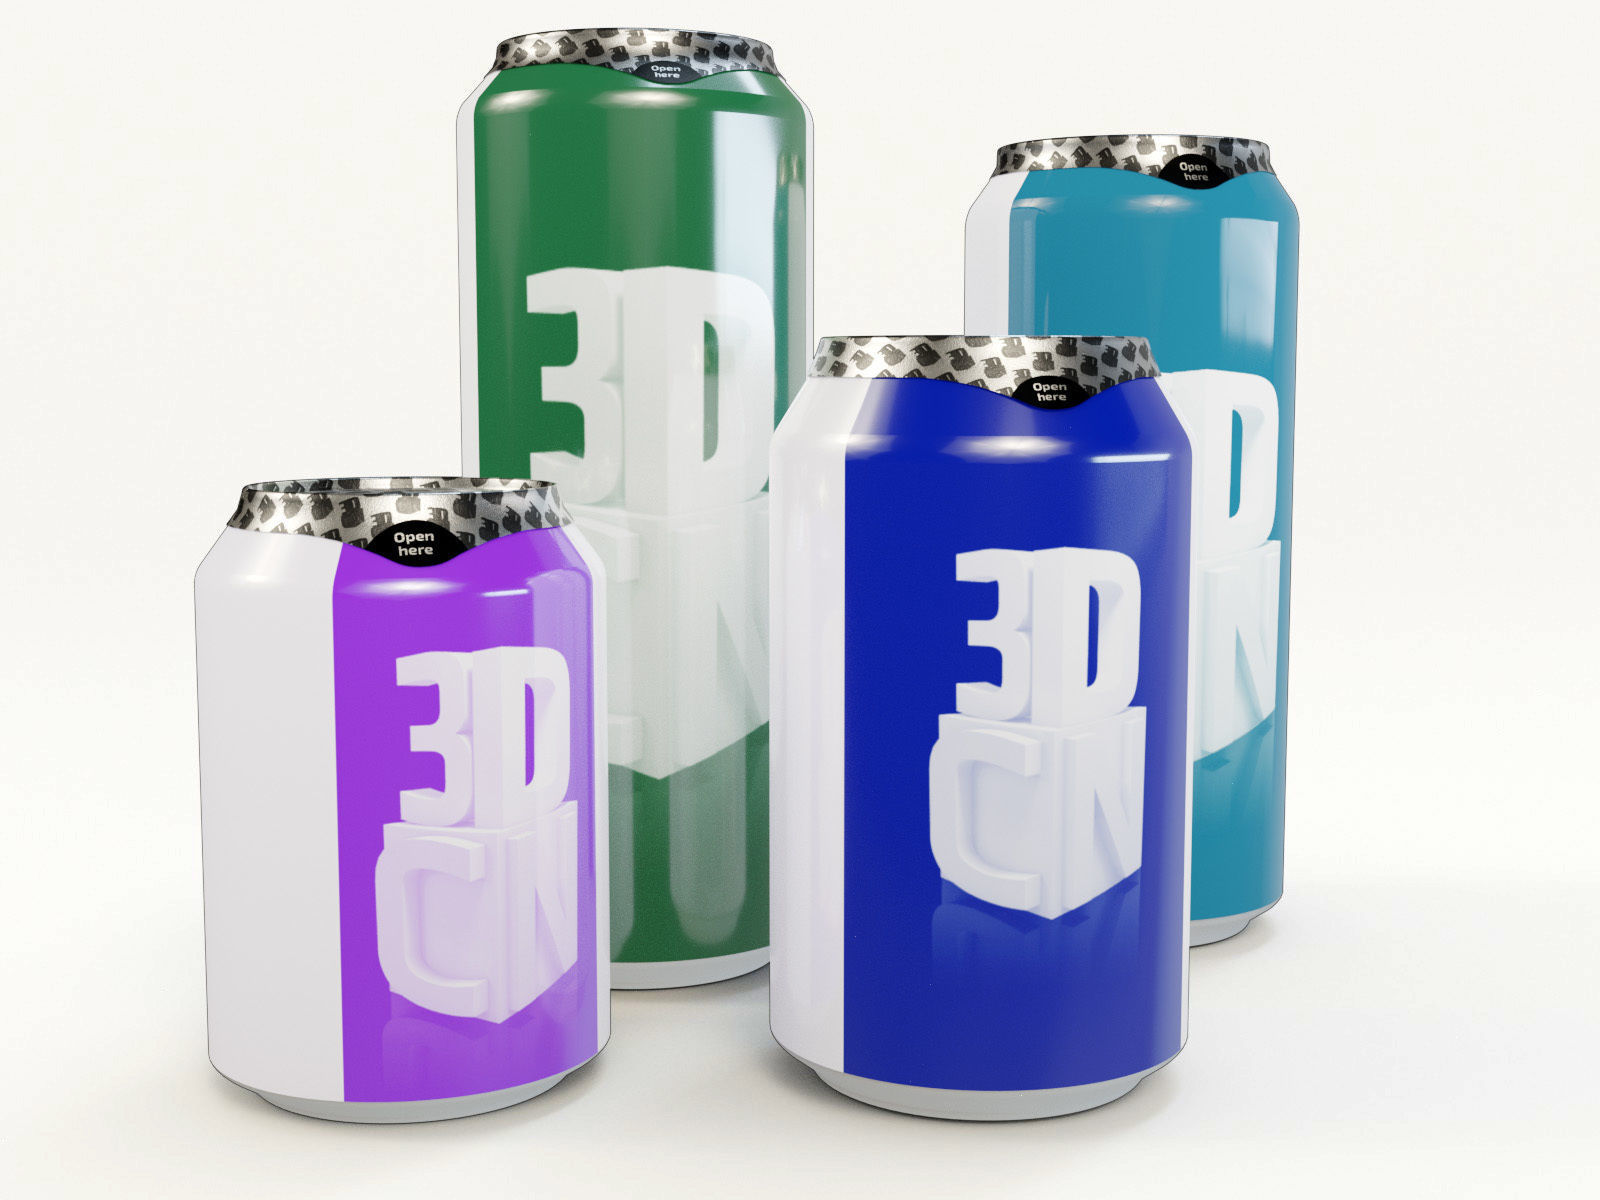 Beverage cans 250ml 330ml 440ml 500ml with hygiene foil cover